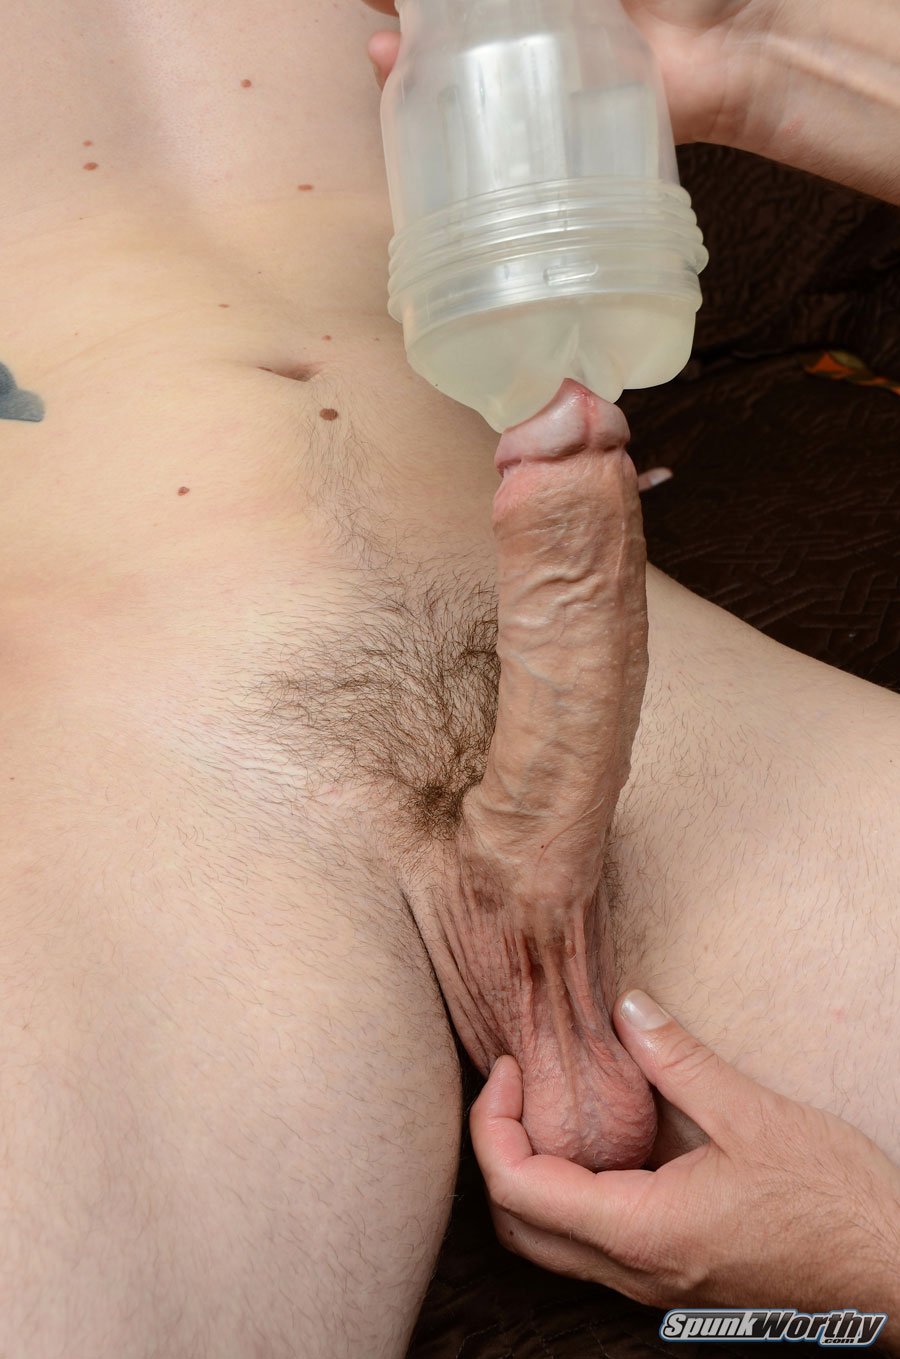 SpunkWorthy Eli Straight Marine Gets A Hand Job Fleshlight from A guy Amateur Gay Porn 11 Straight Marine Gets His First Hand Job From Another Guy